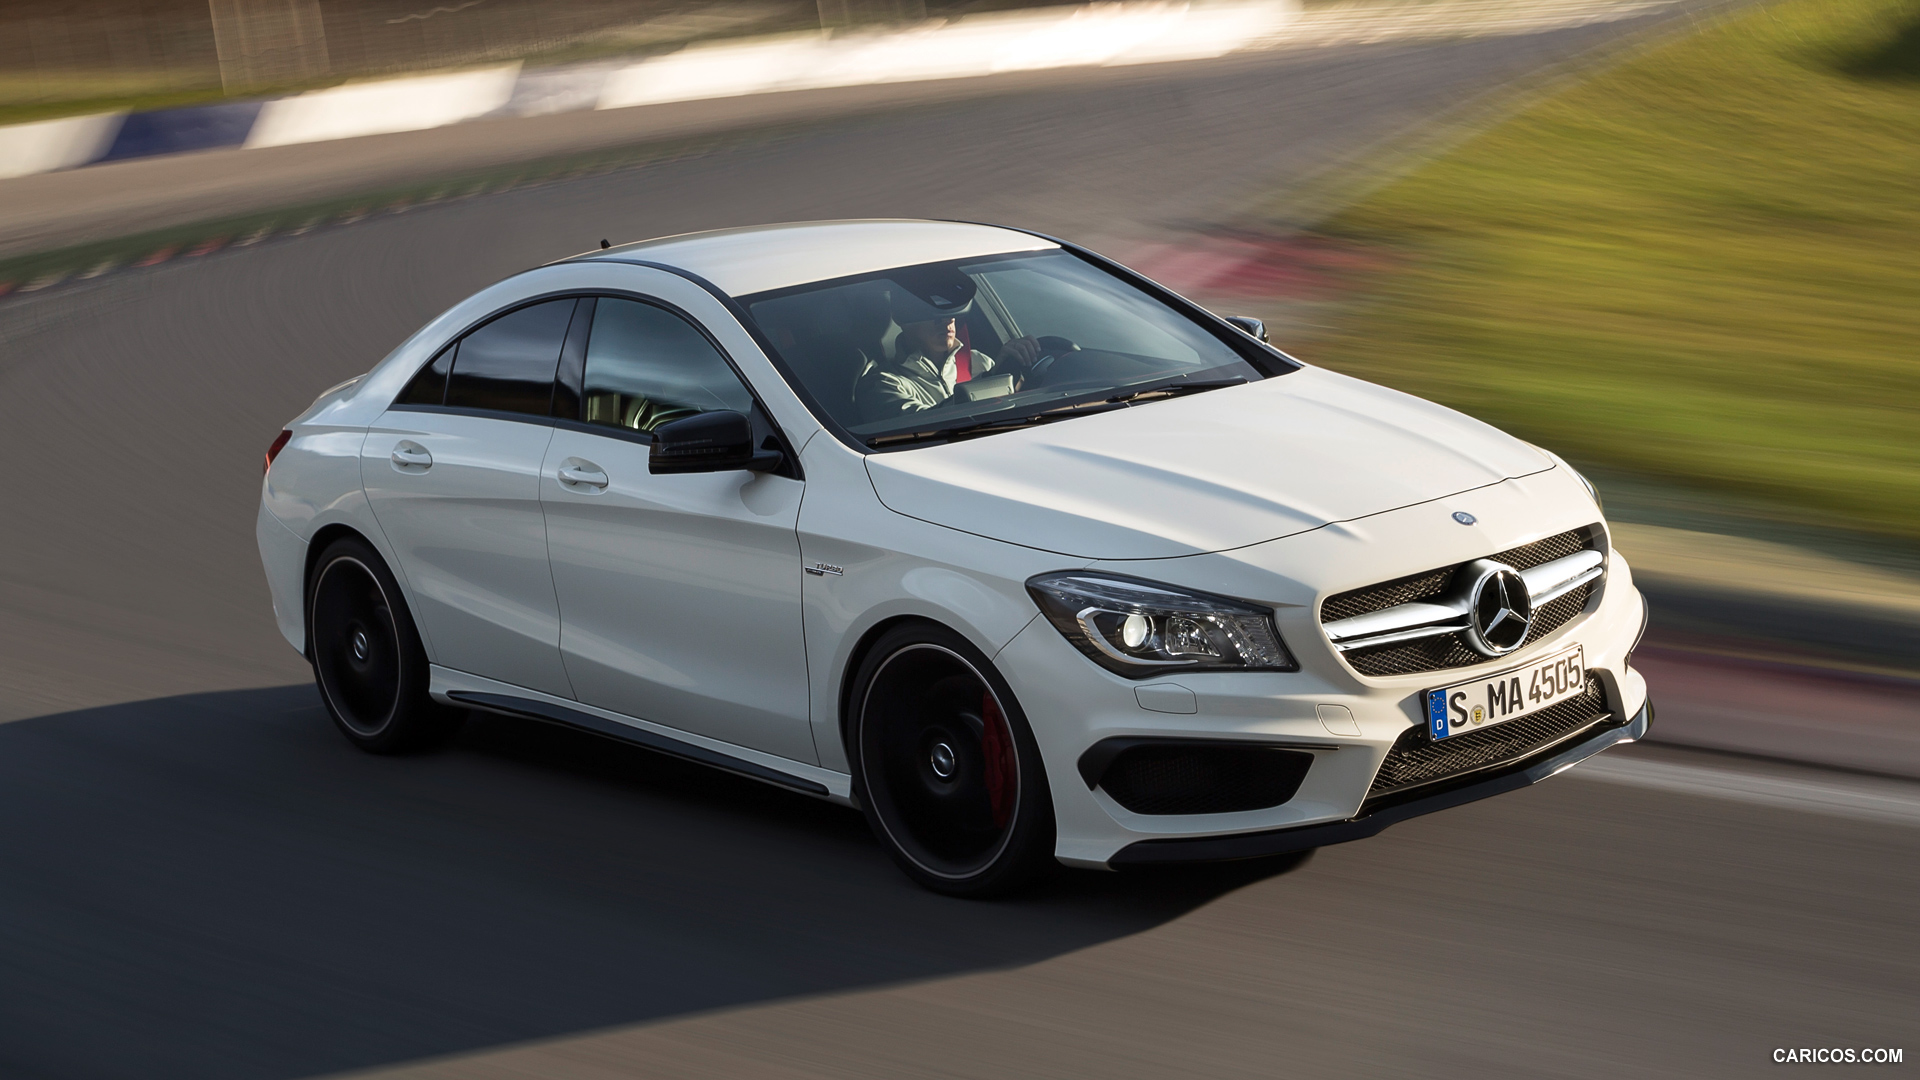 Mercedes benz cla 45 amg photos photogallery with 42 for Cla 45 amg mercedes benz